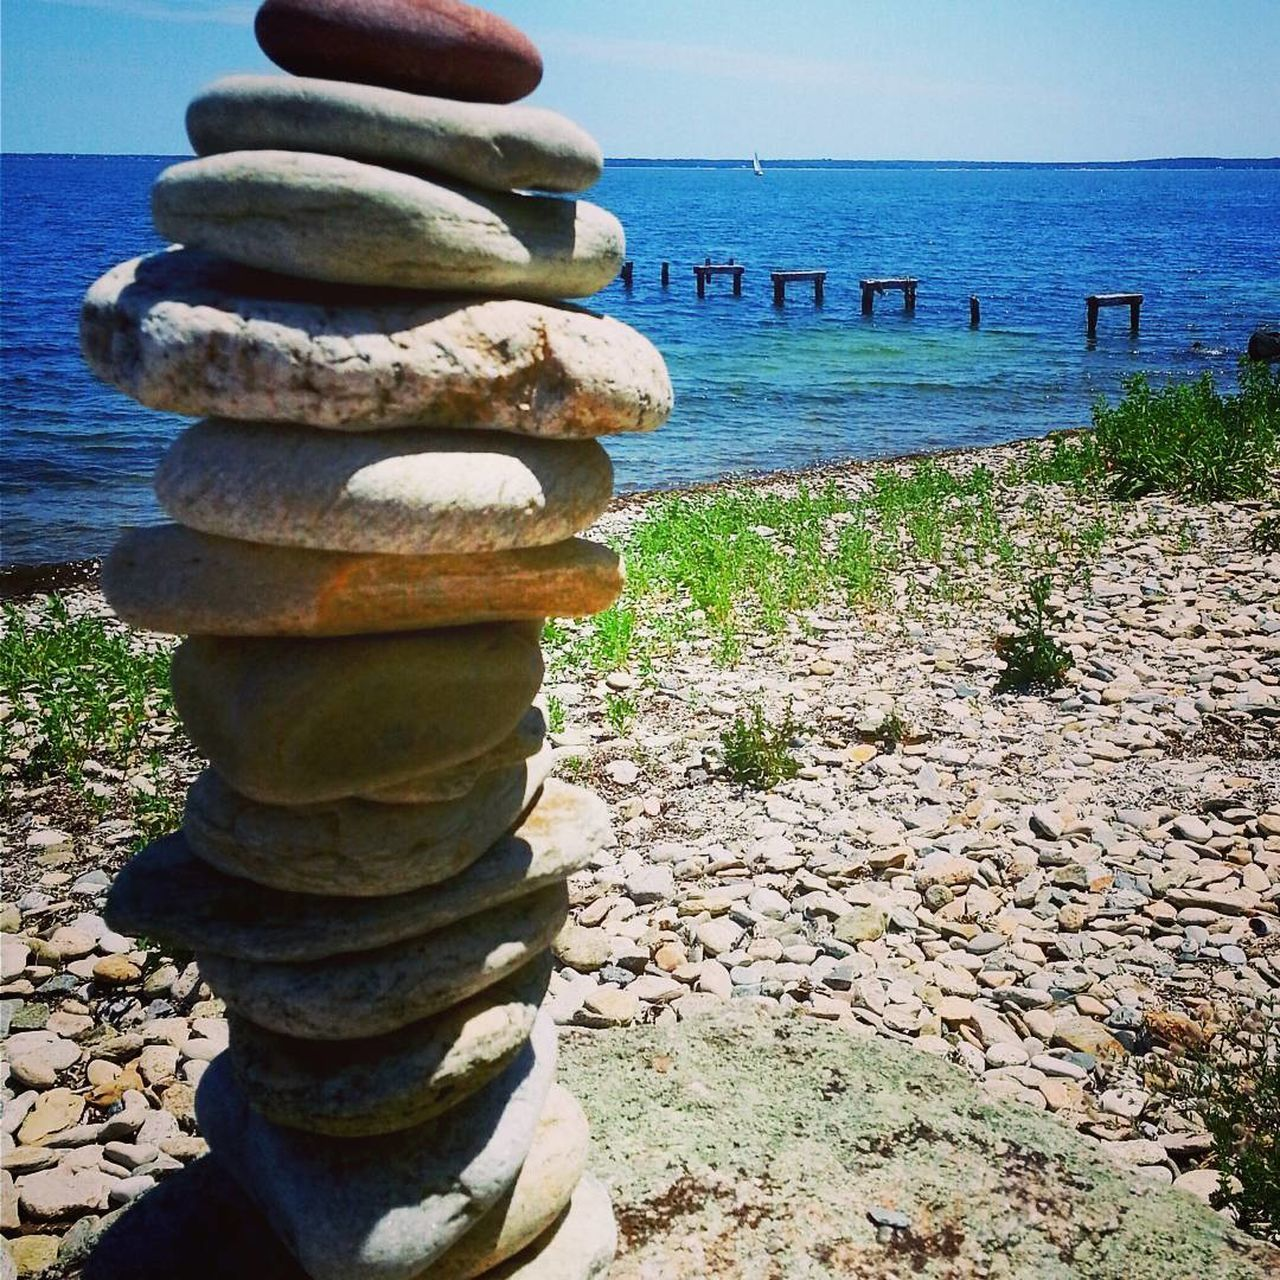 balance, sea, water, stack, rock - object, horizon over water, nature, pebble, tranquil scene, no people, day, tranquility, outdoors, beauty in nature, scenics, clear sky, sky, close-up